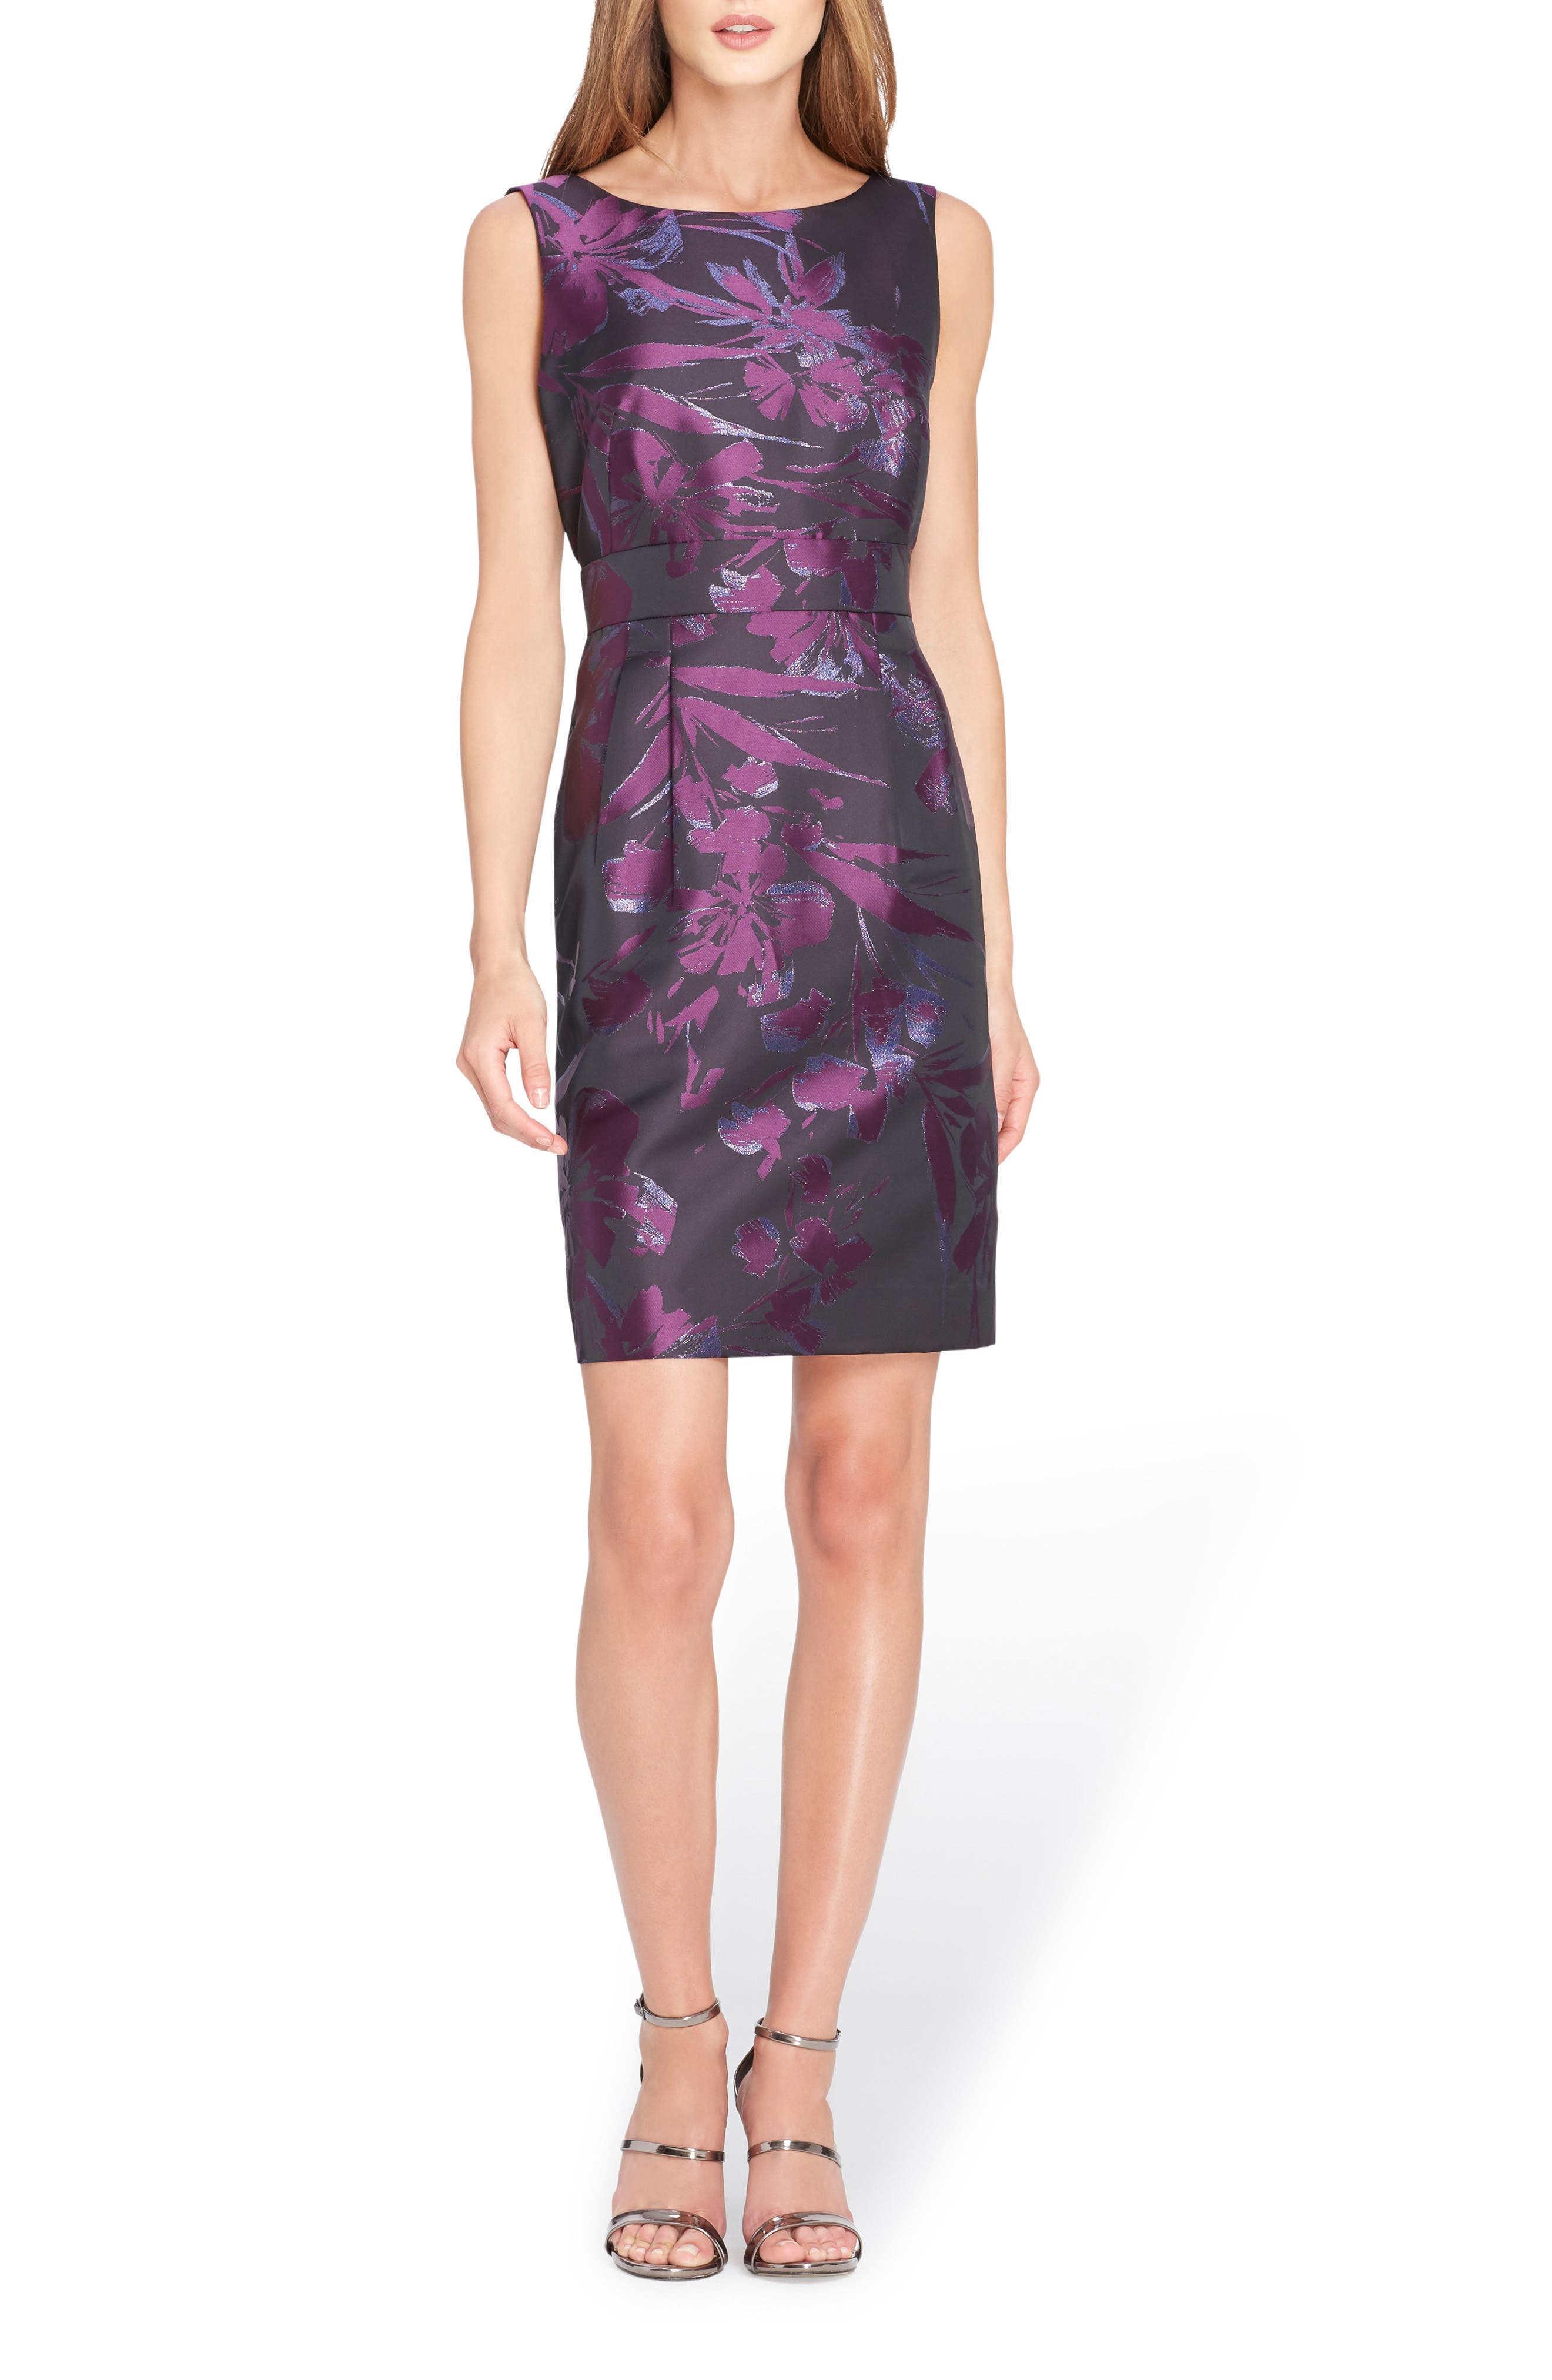 Metallic Jacquard Sheath Dress,                             Main thumbnail 1, color,                             Black/ Plum/ Navy